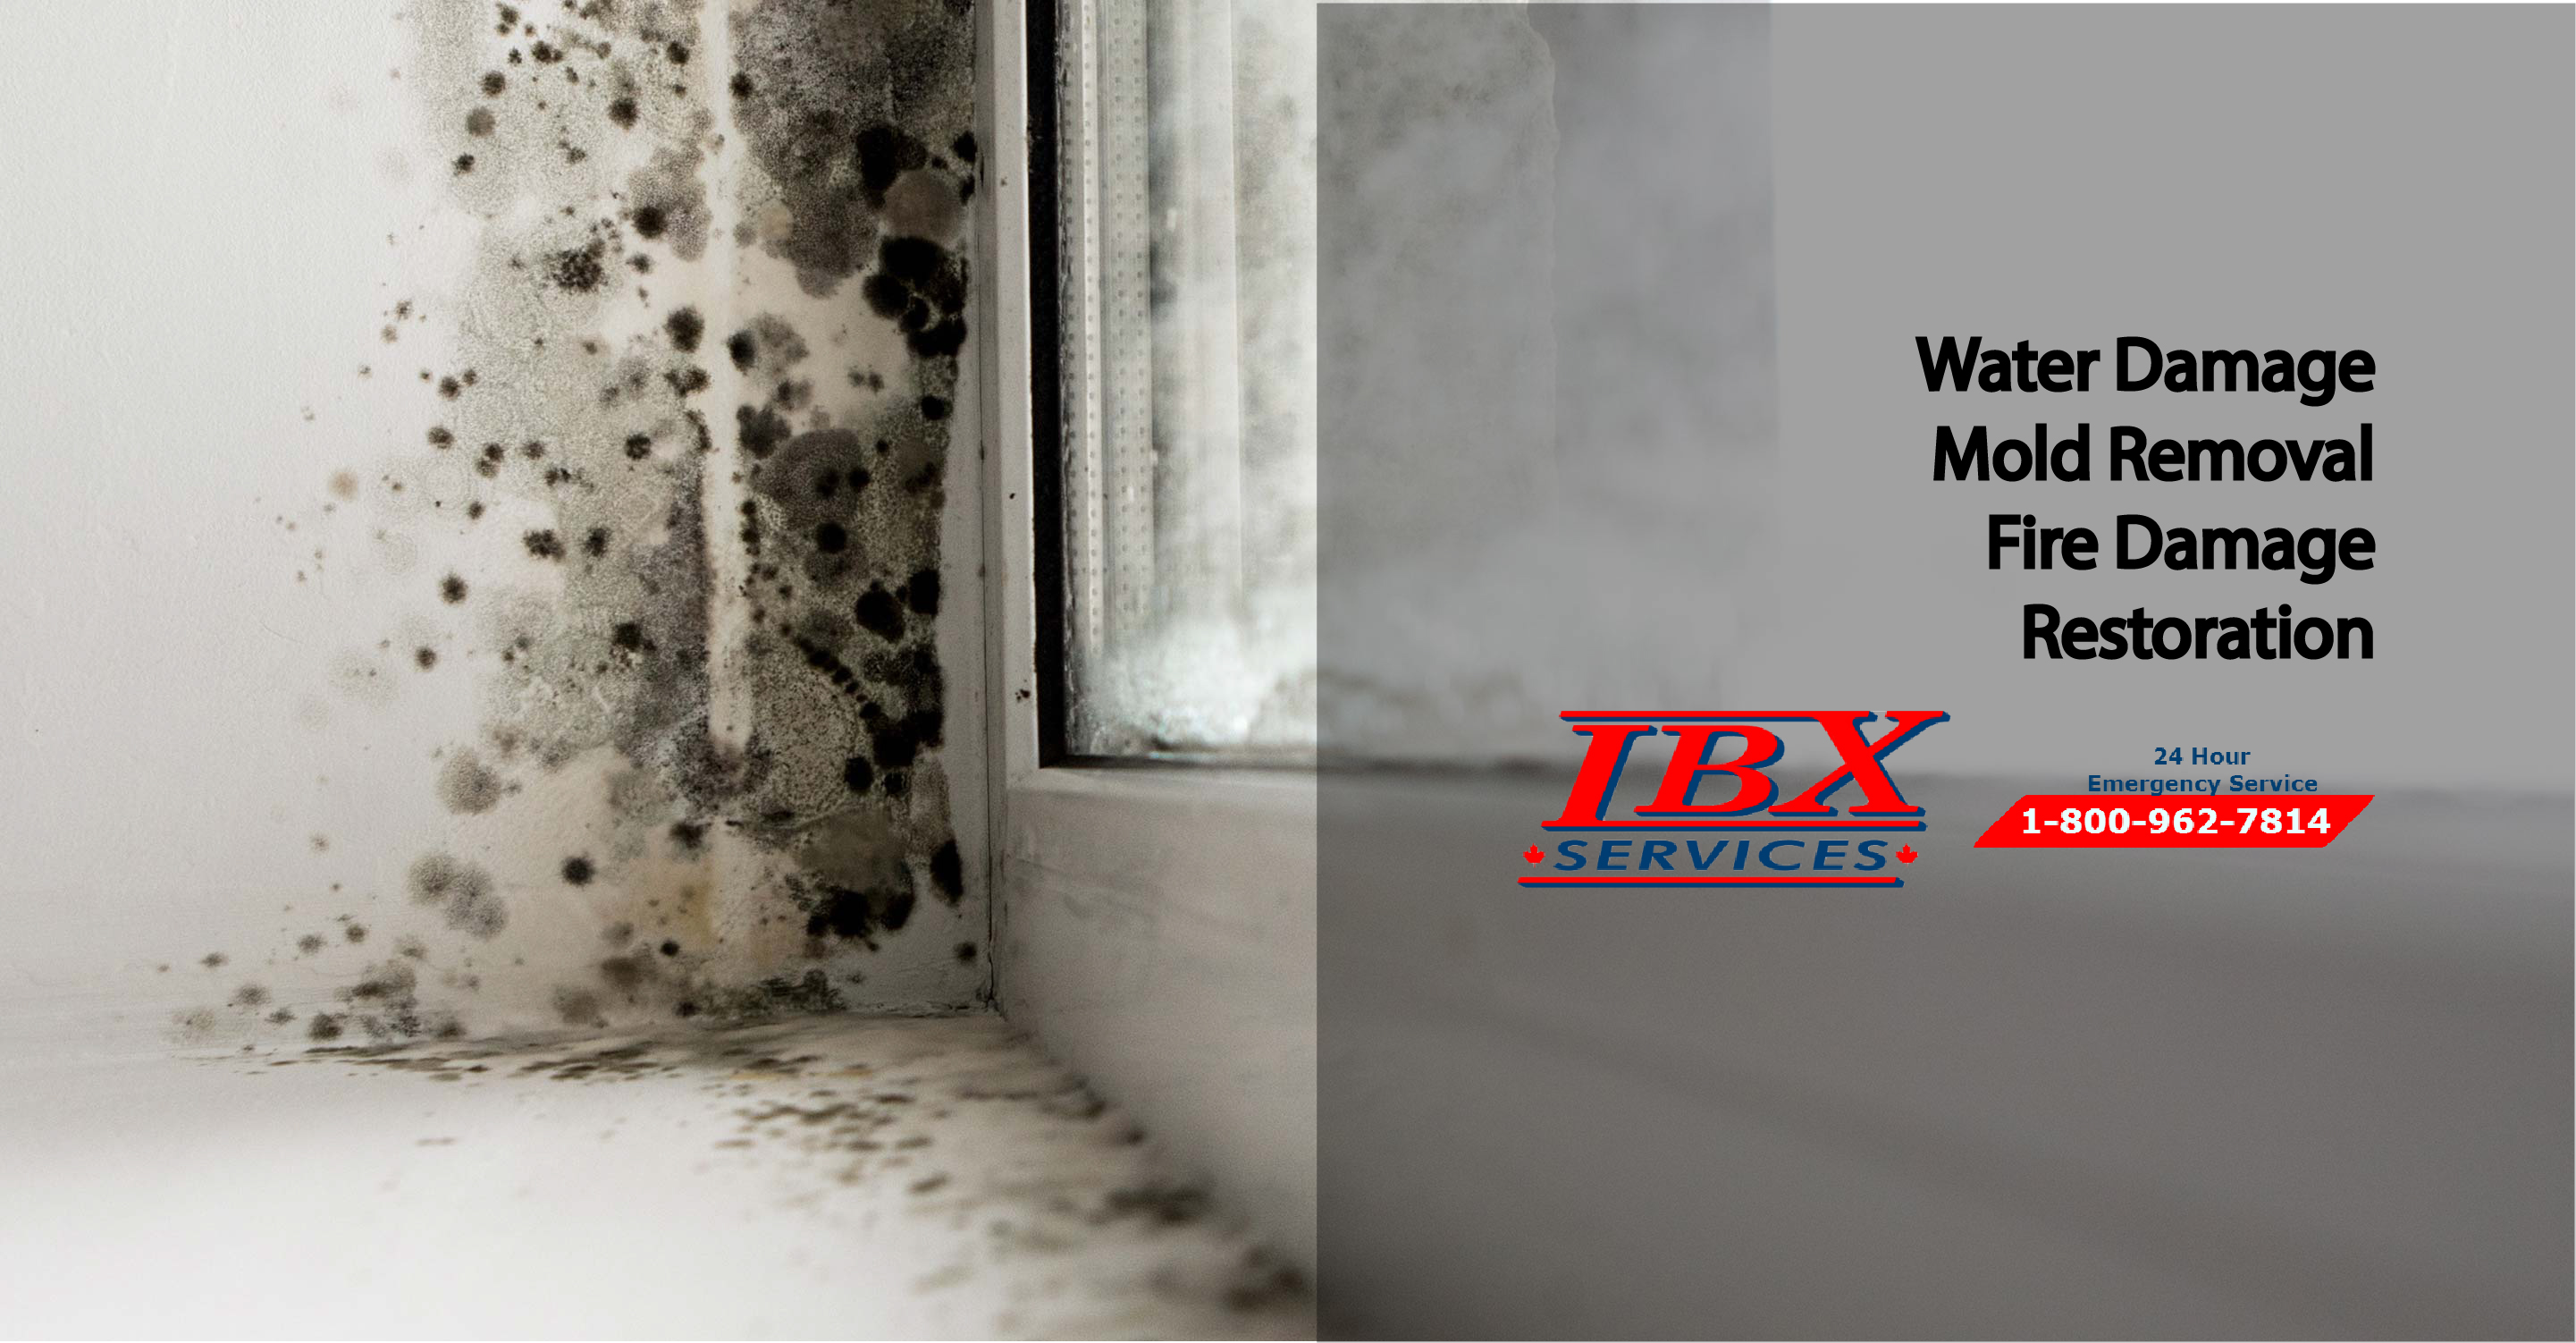 Why is mold growing in my home? | Mold Spores